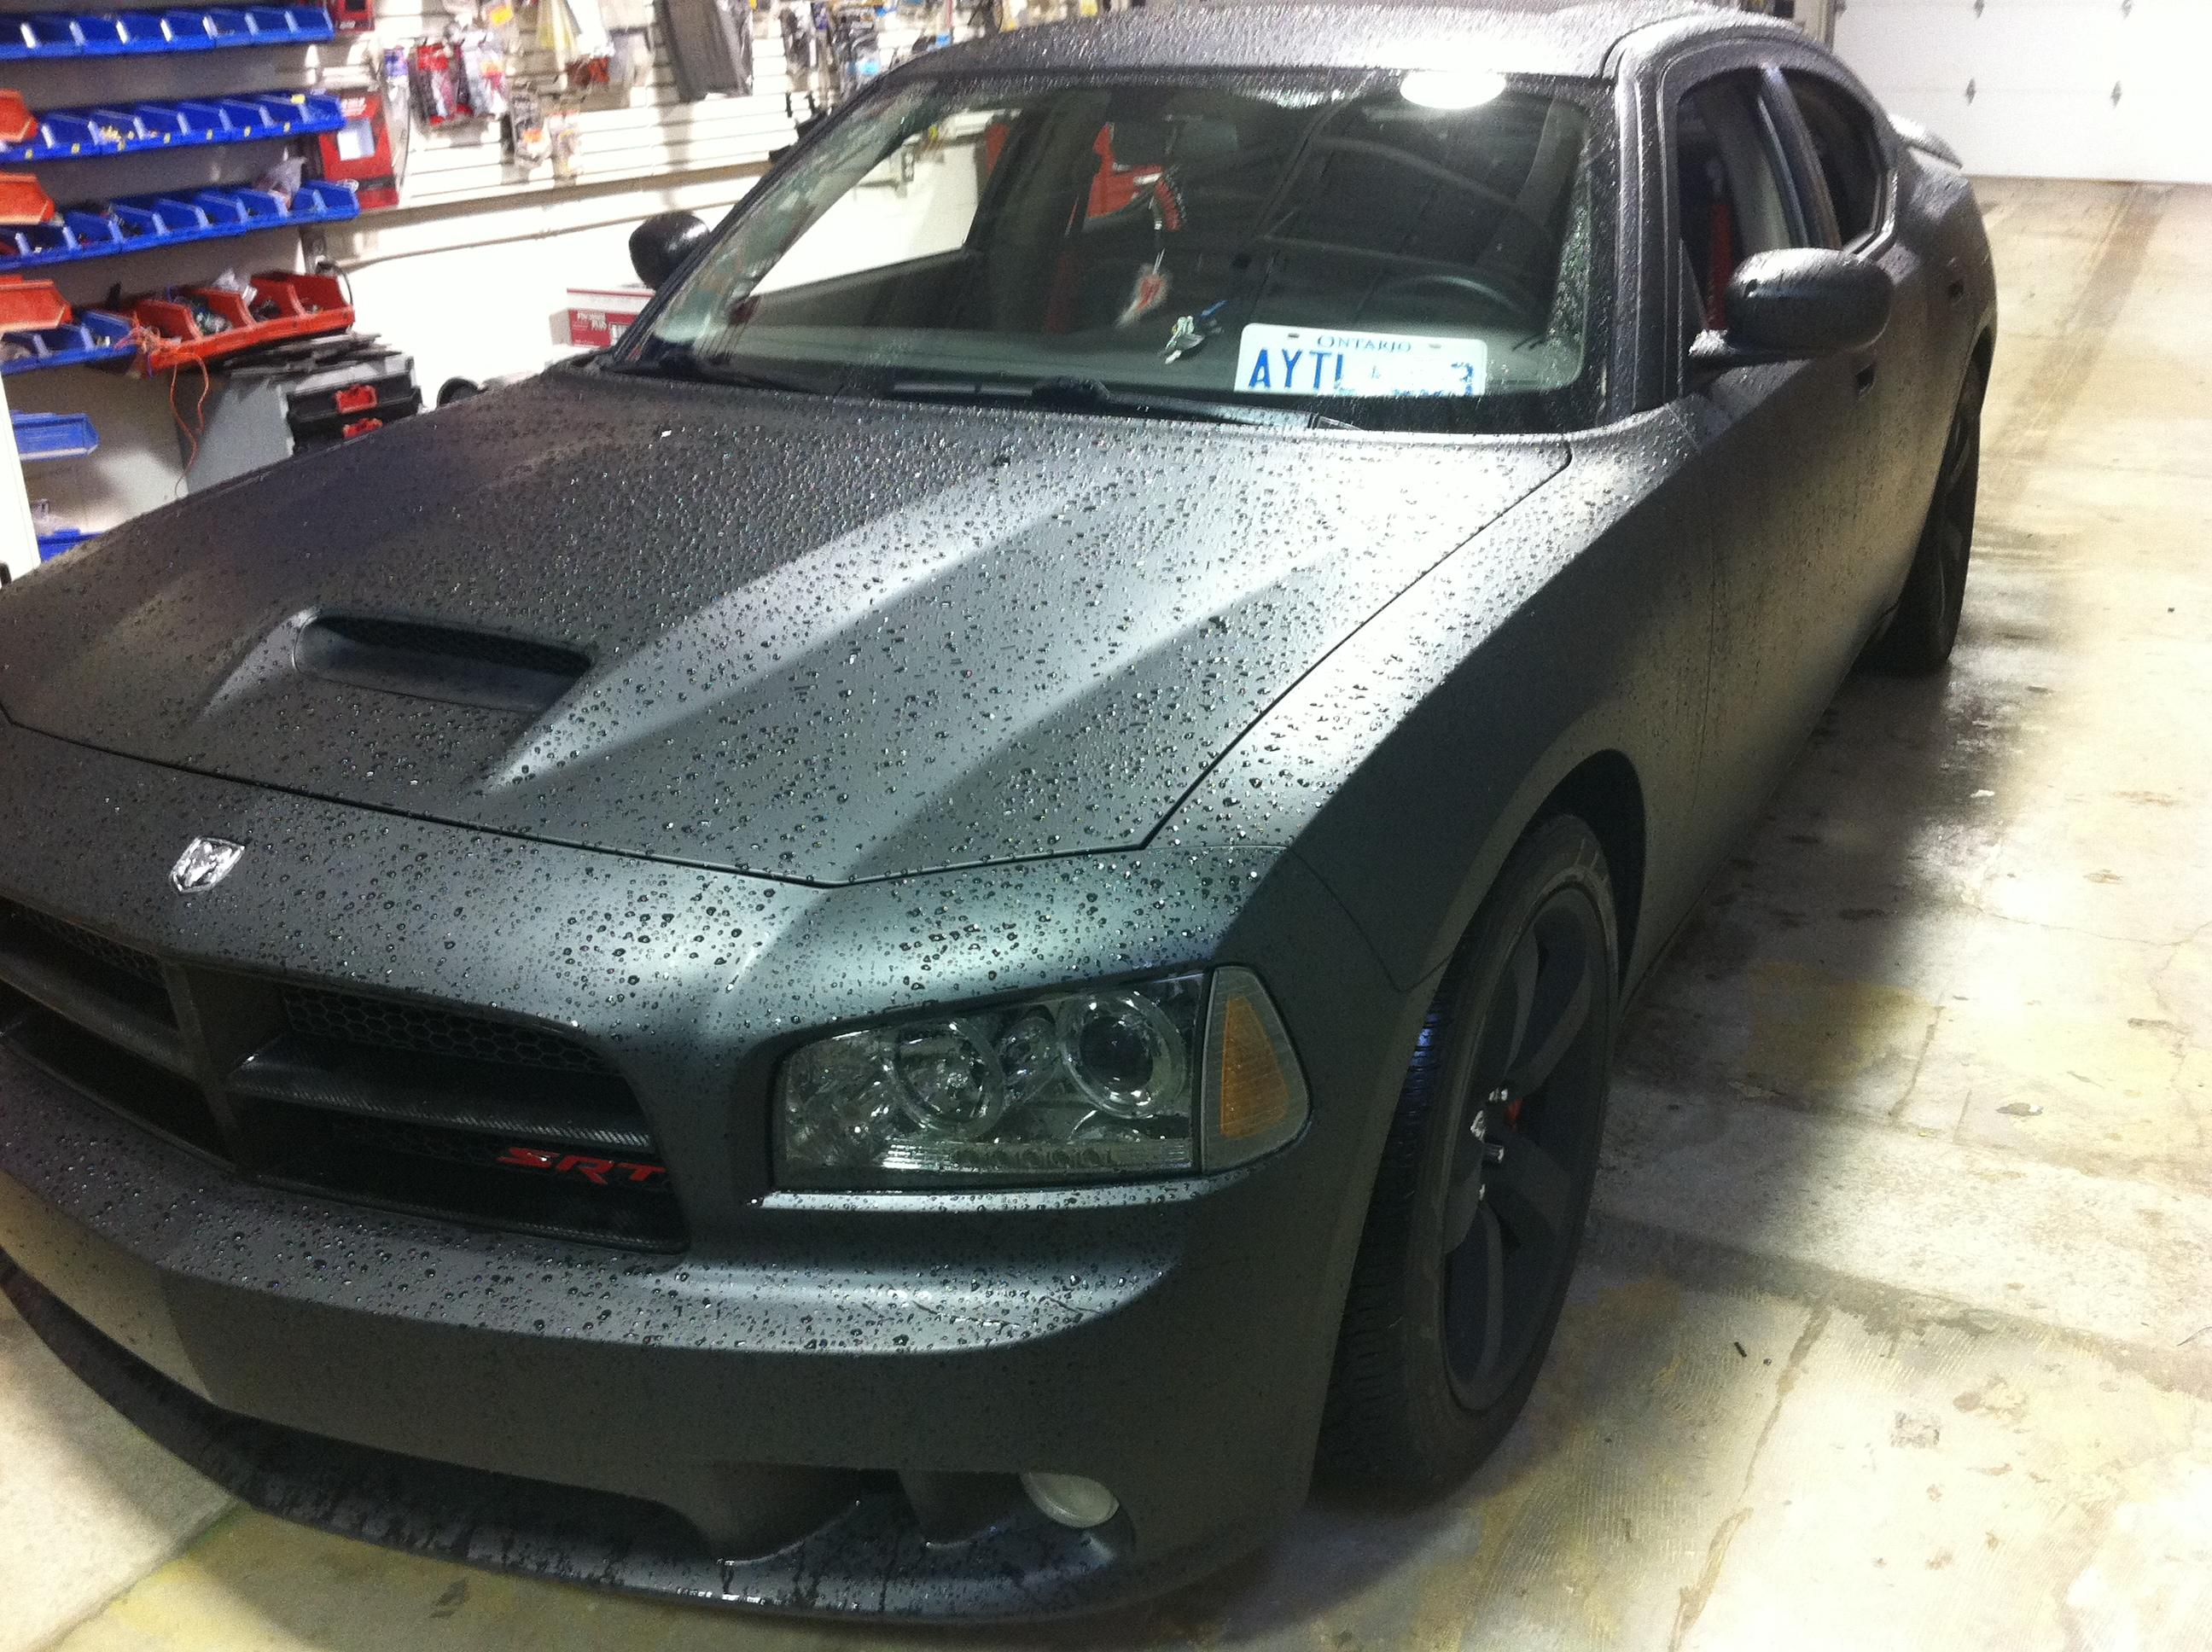 Dodge Charger Srt Black Dodge Charger Srt Black With Dodge Charger